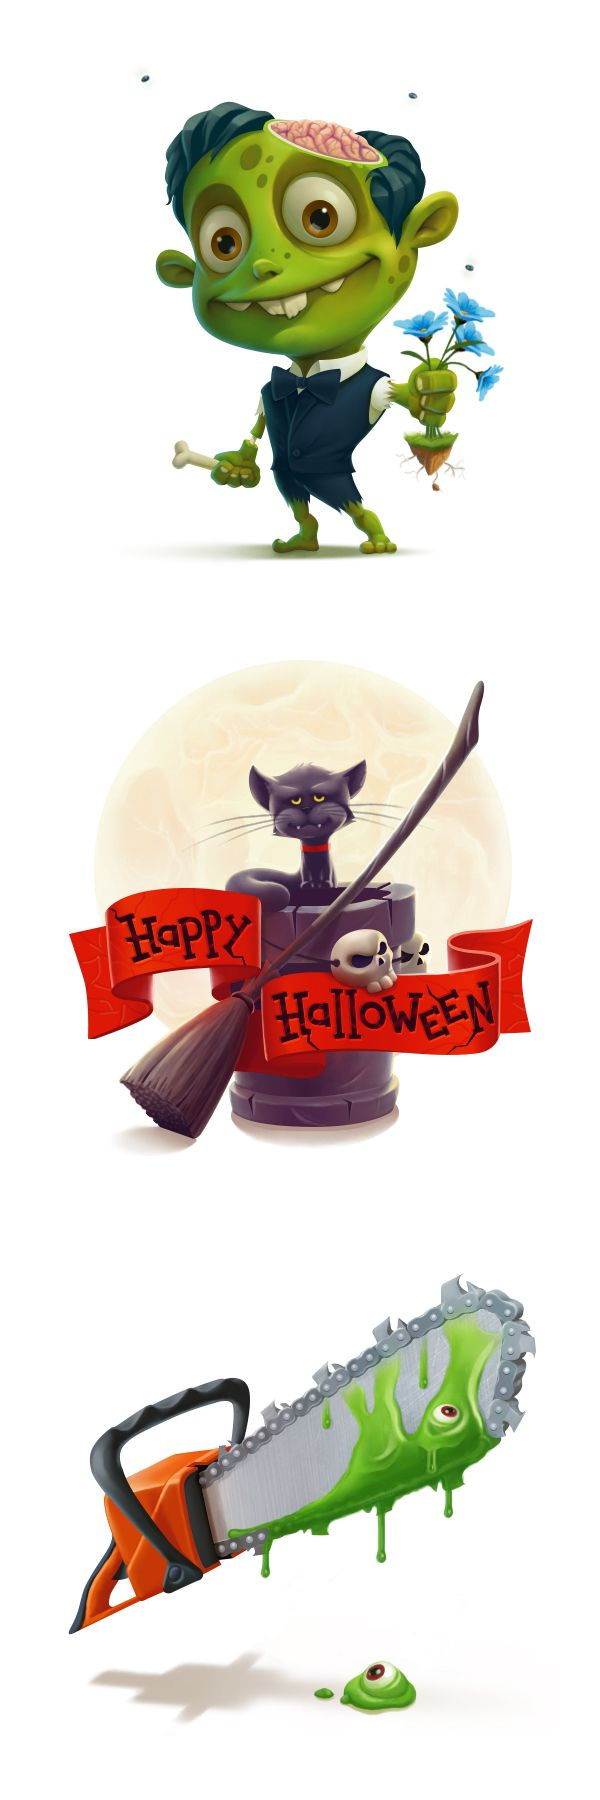 Helloween Gifts by Anton Kuryatnikov ★ Find more at http://www.pinterest.com/competing/